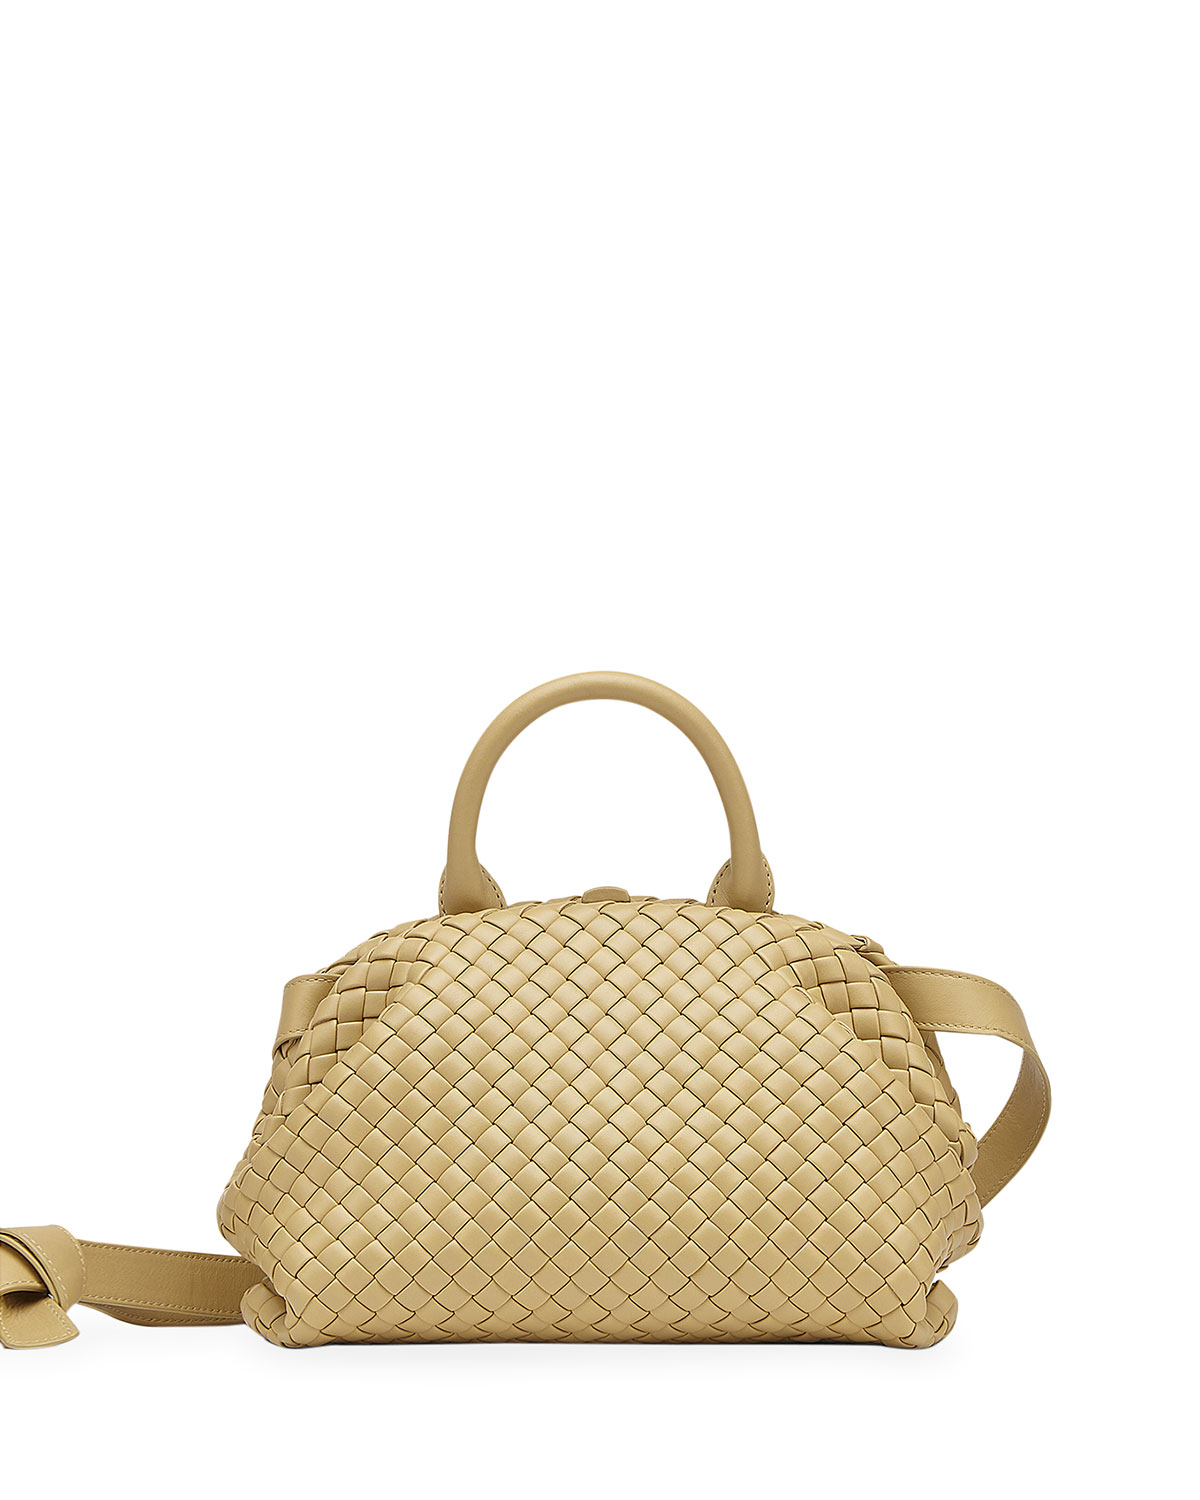 Bottega Veneta INTRECCIATO TOP HANDLE SATCHEL BAG